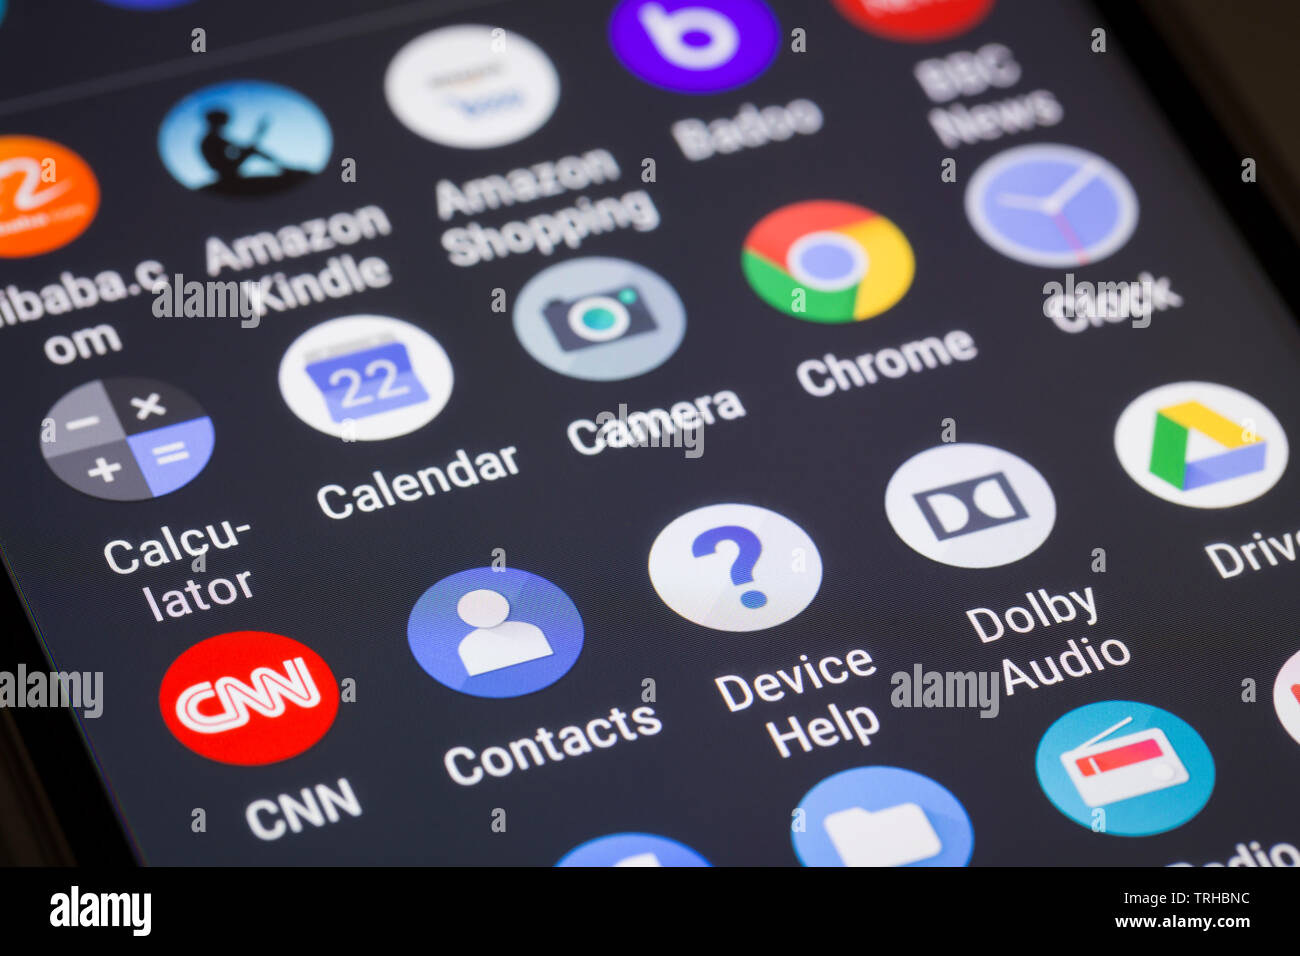 App logos on mobile phone screen Stock Photo